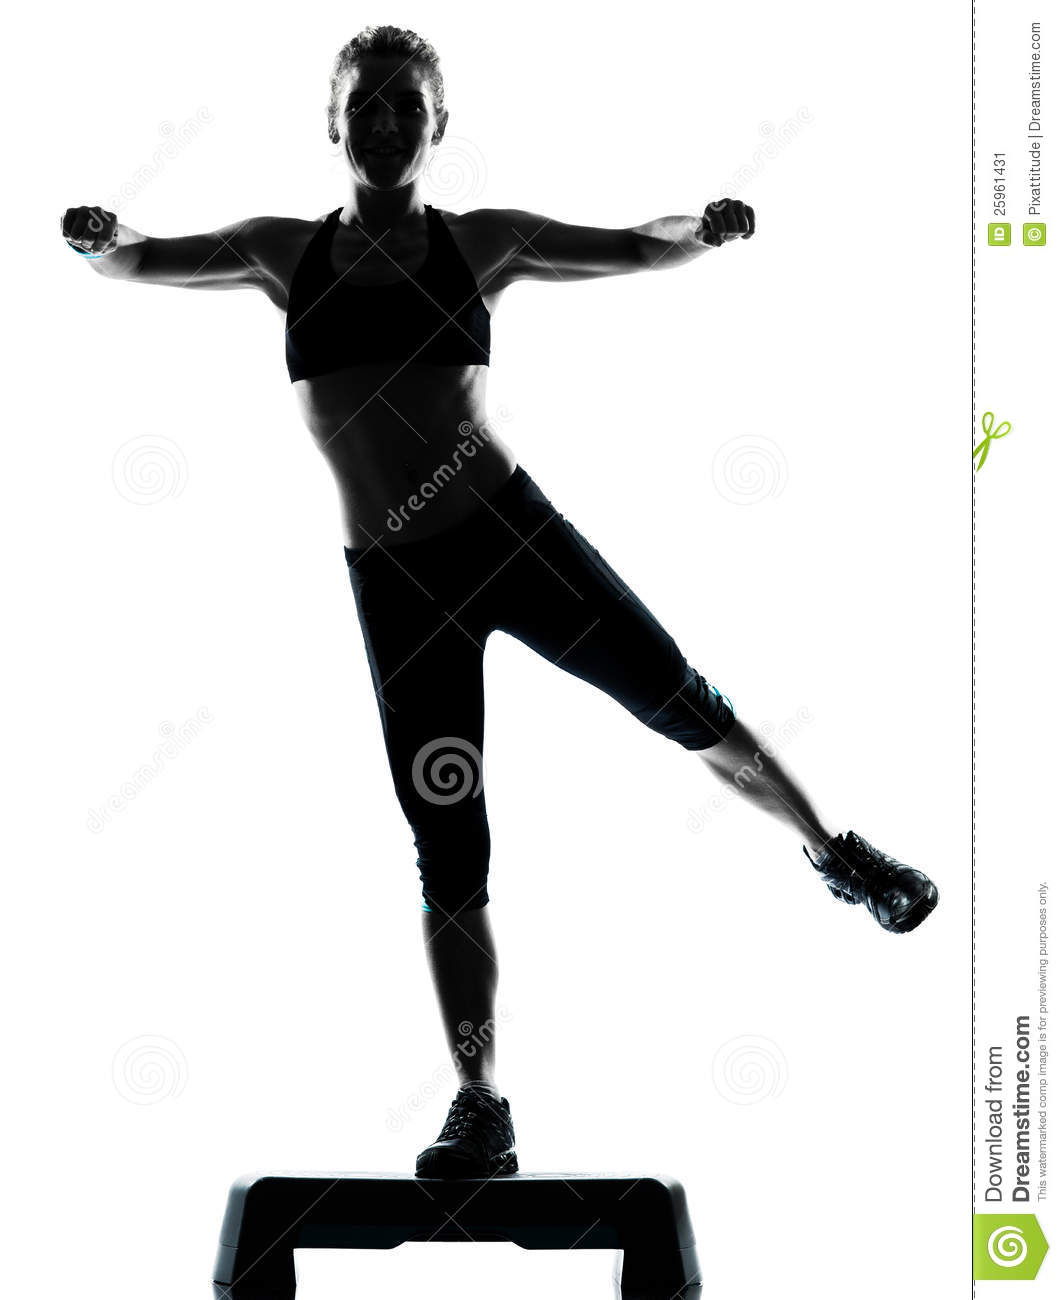 Woman Exercising Step Aerobics Stock Image - Image: 25961431